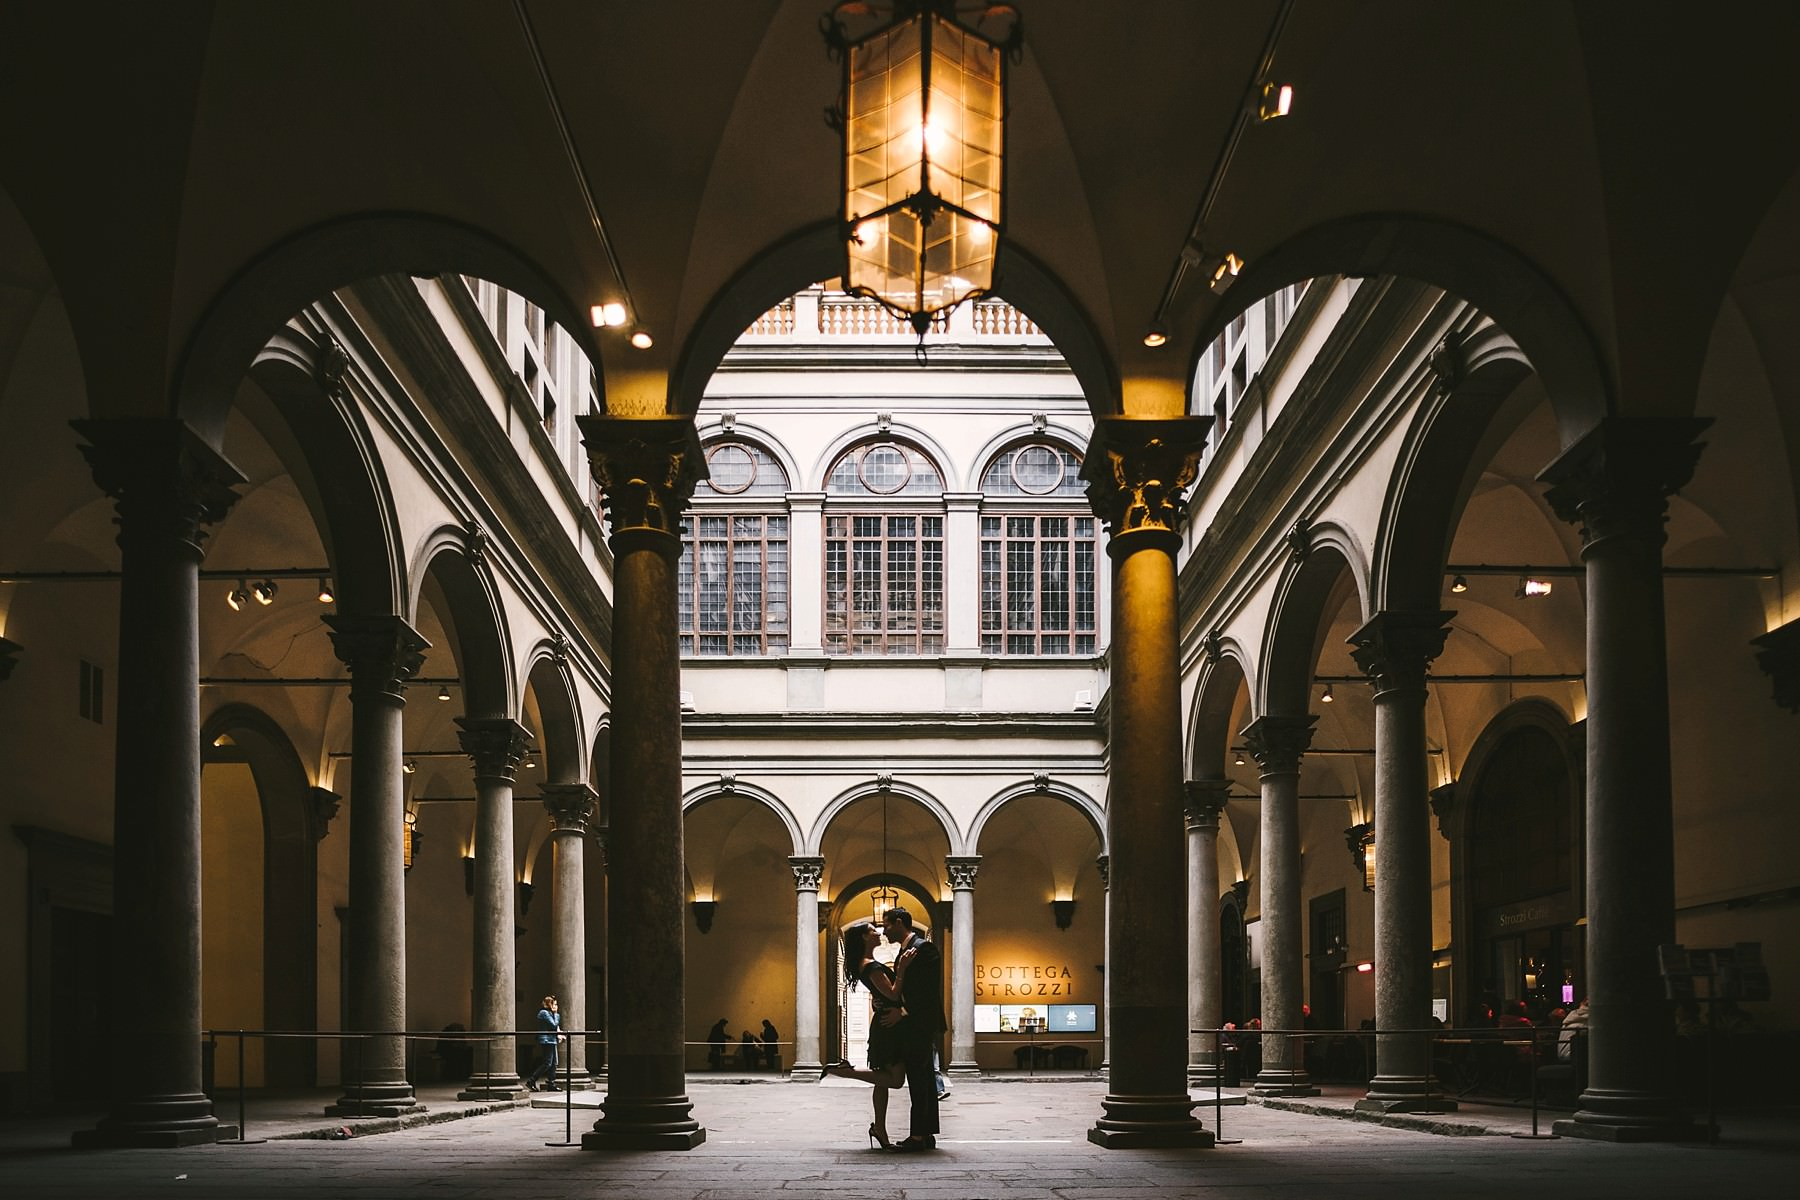 Romantic and charming engagement photo shoot in Florence into Palazzo Strozzi at it's best! Absolutely unique photo which show the magic of an engaged couple frame d in this breathtaking scenery